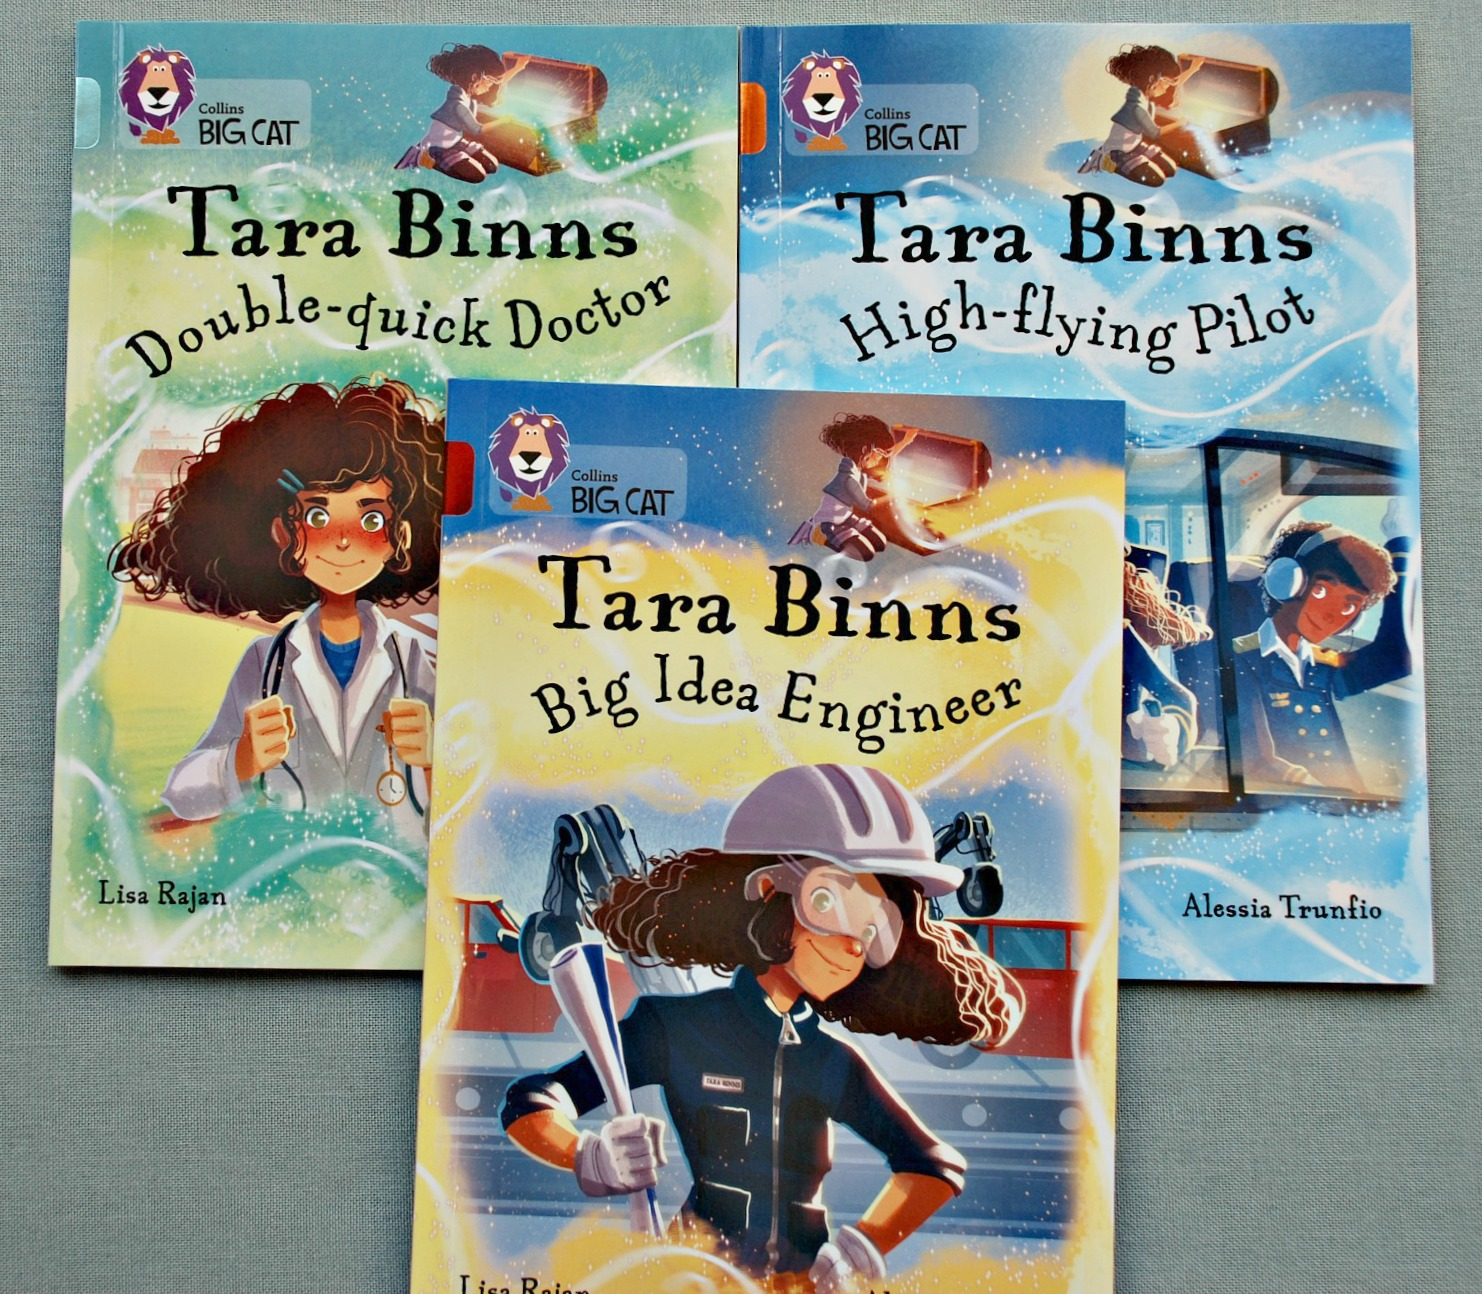 Tara Binns Books by Collins.  Books which show female characters in STEM jobs